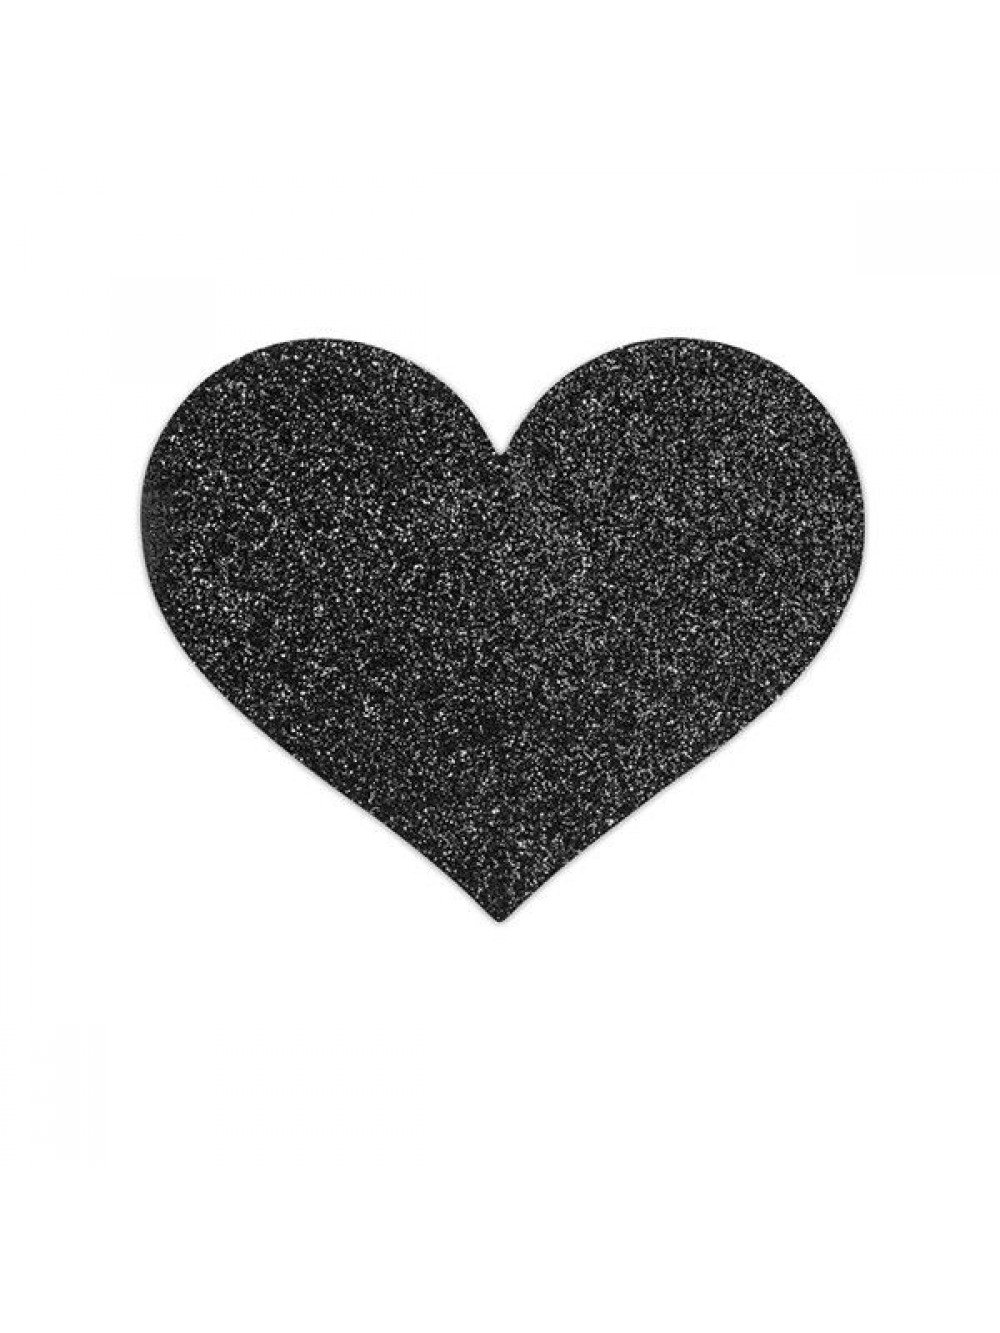 BIJOUX PEZONERAS FLASH BLACK HEART 8437008003054